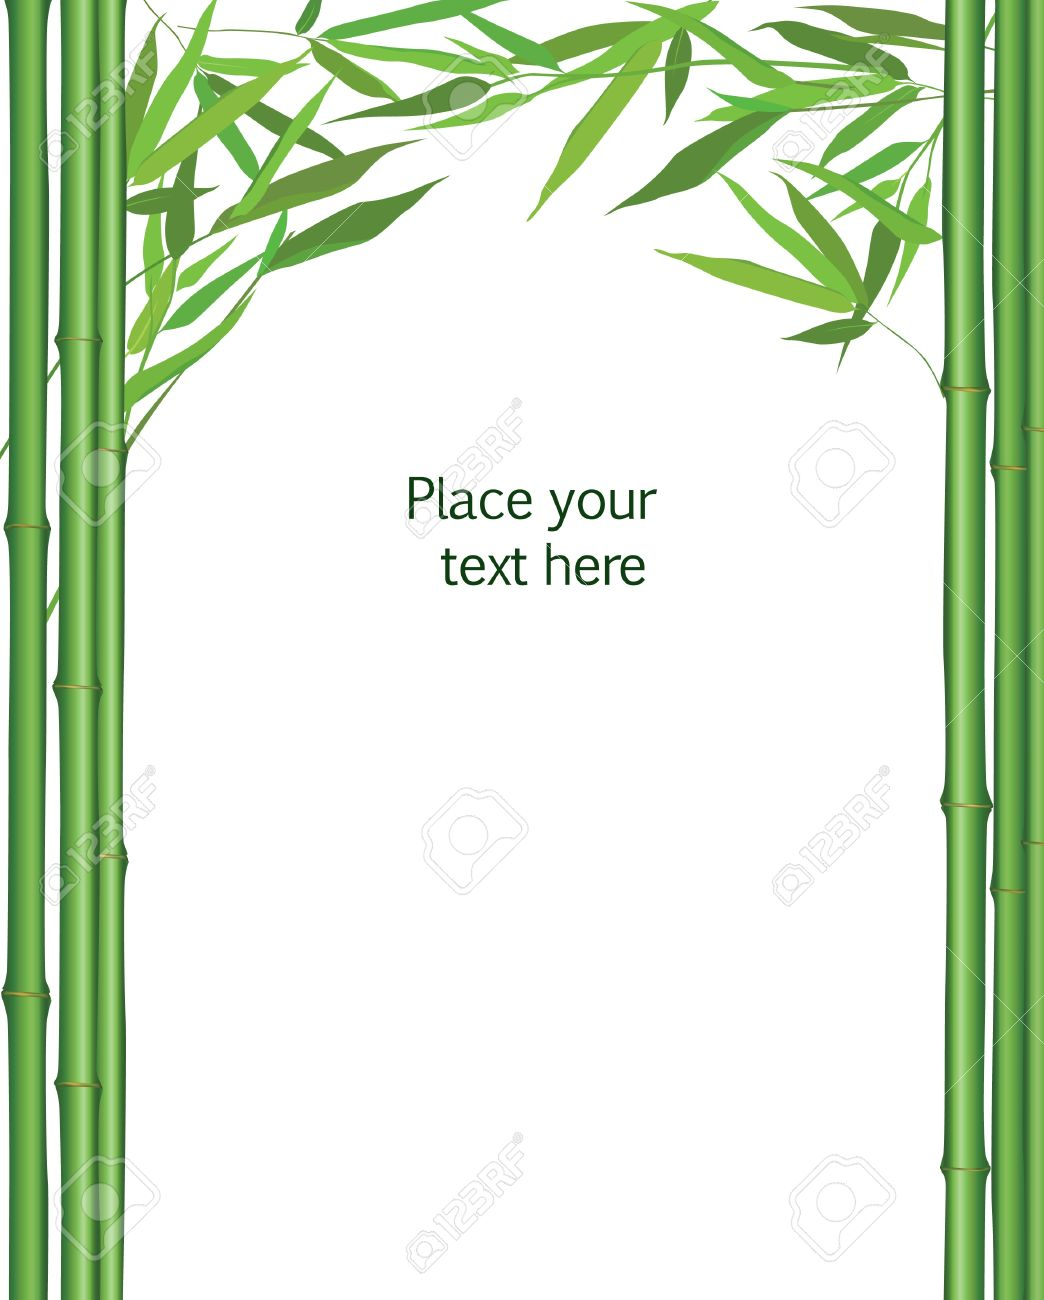 Bamboo Frame With Leaves Decor Vector Illustration Isolated Royalty Free Cliparts Vectors And Stock Illustration Image 21173630